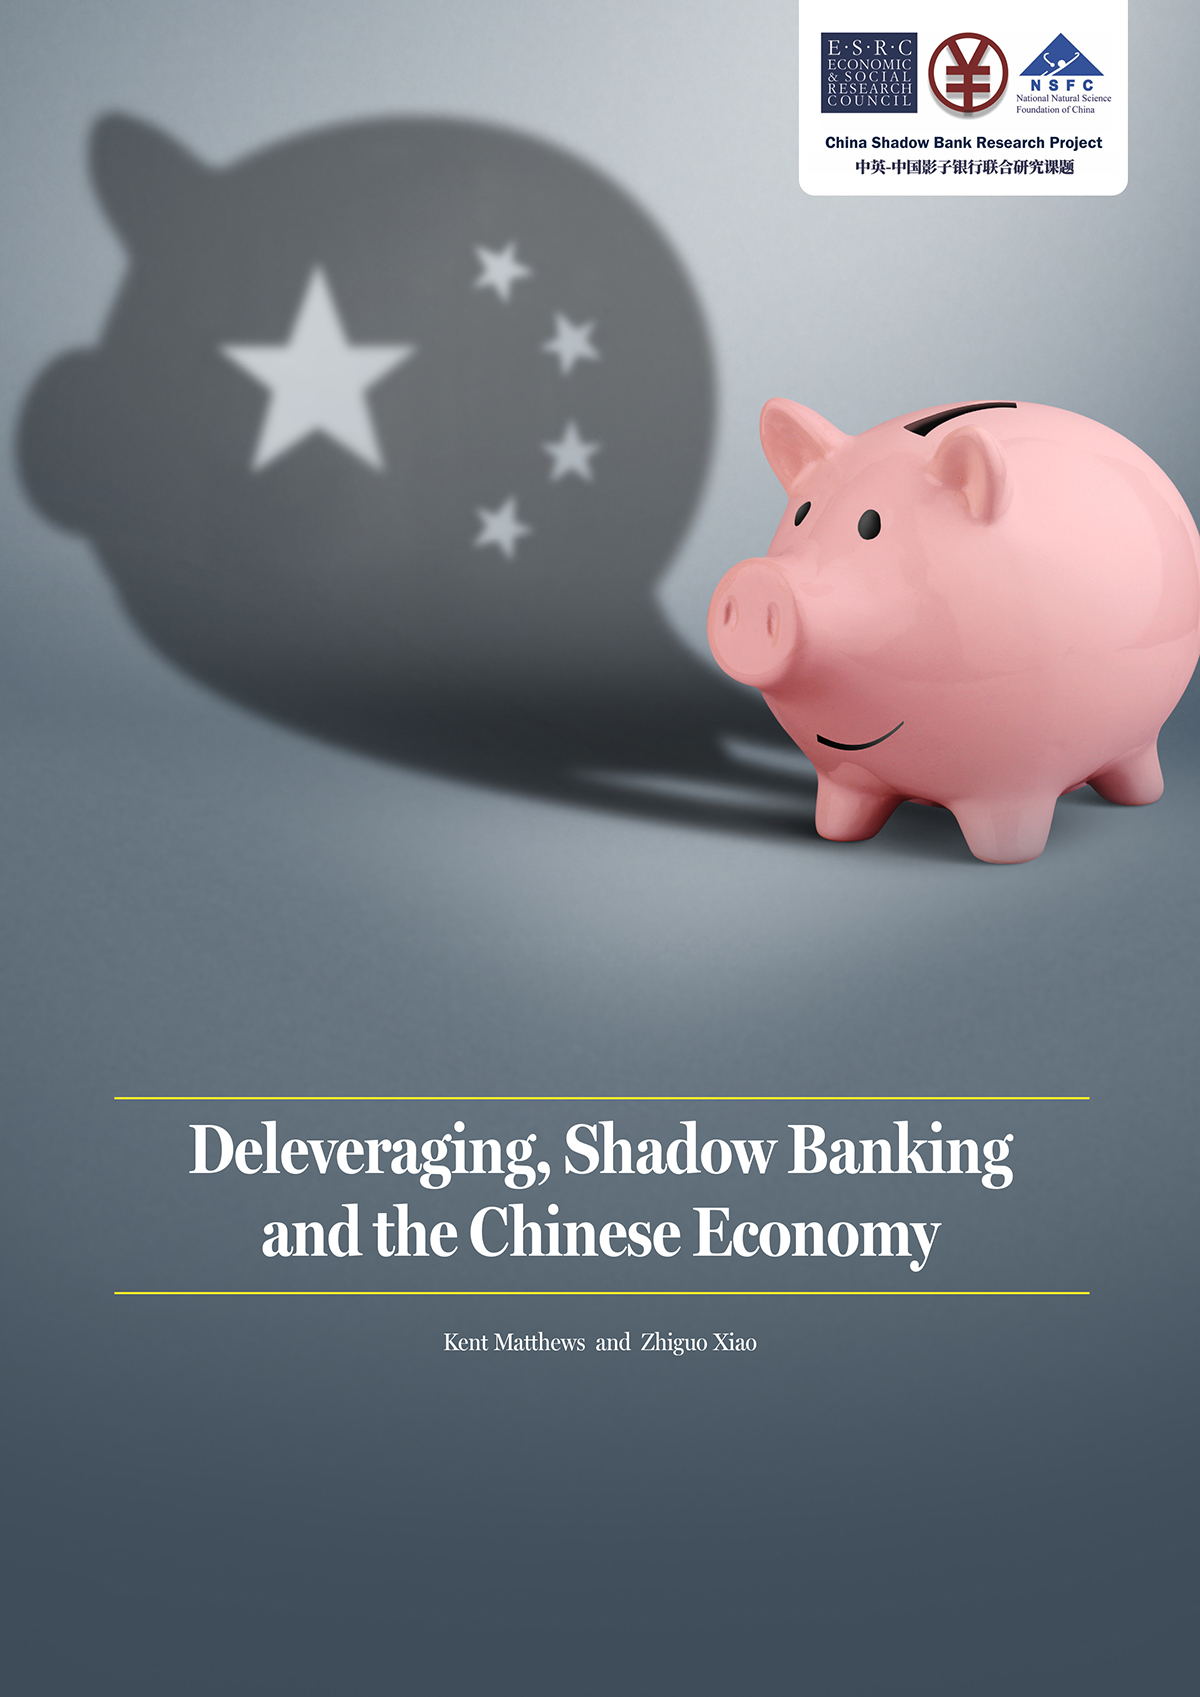 Deleveraging, Shadow Banking and the Chinese Economy